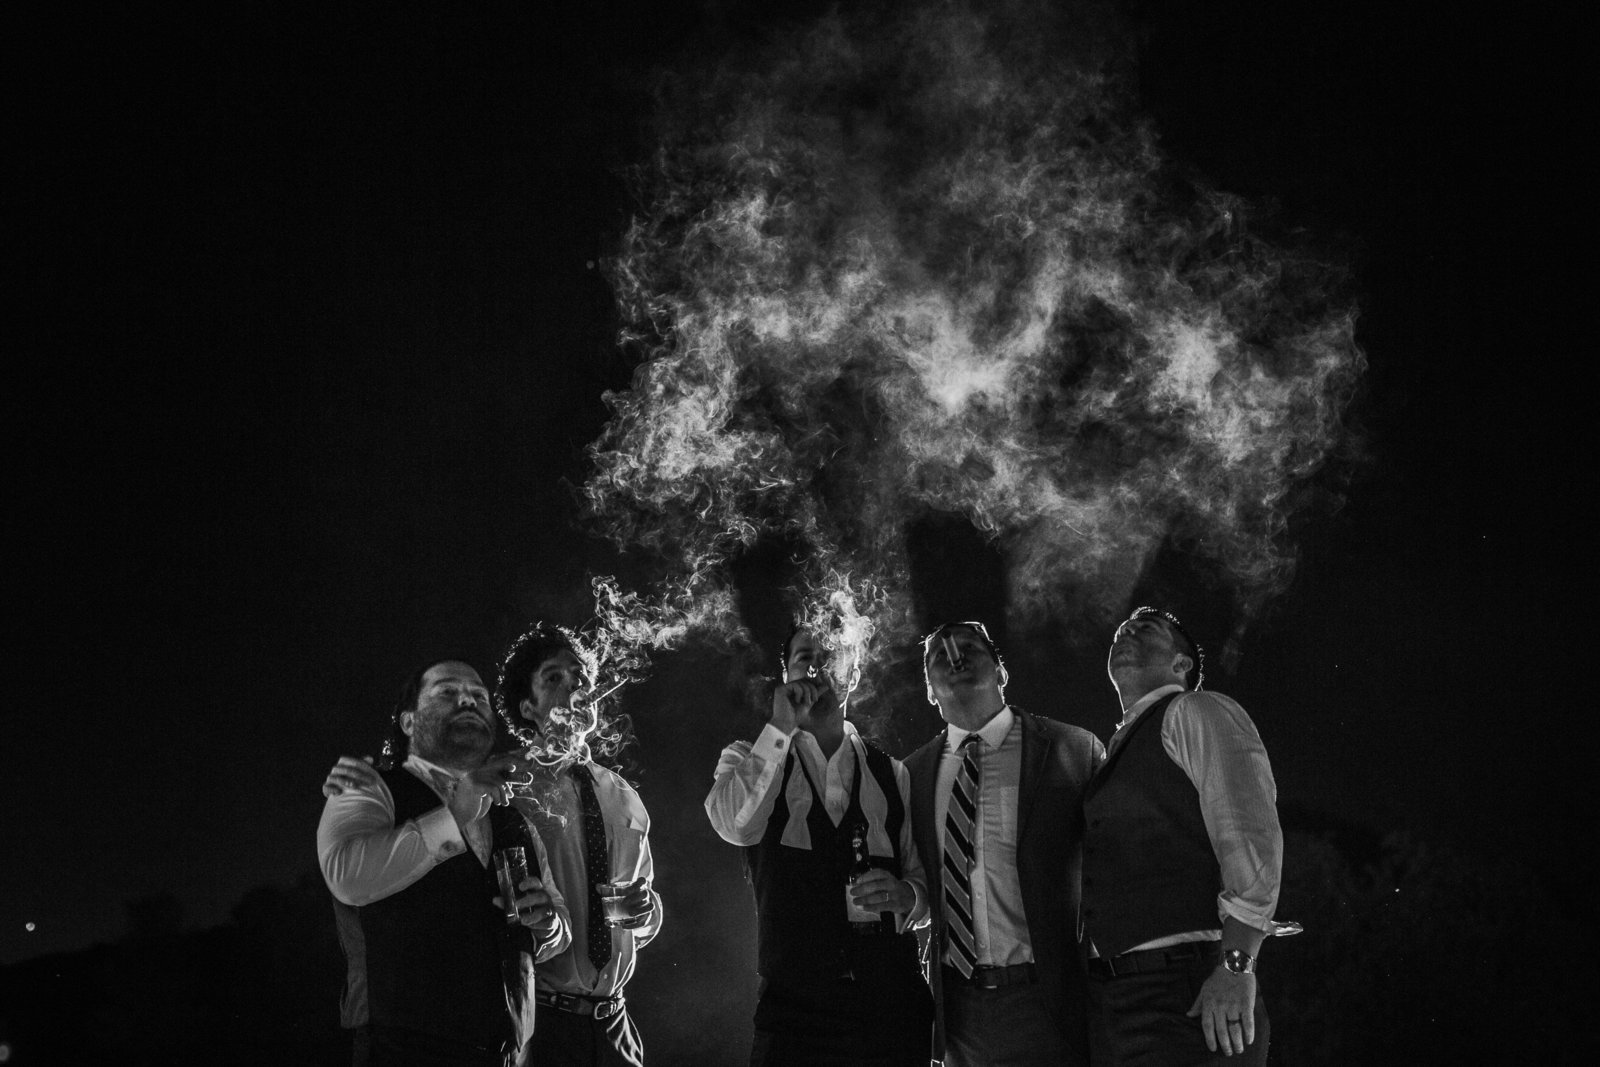 groomsmen enjoy cigars at night